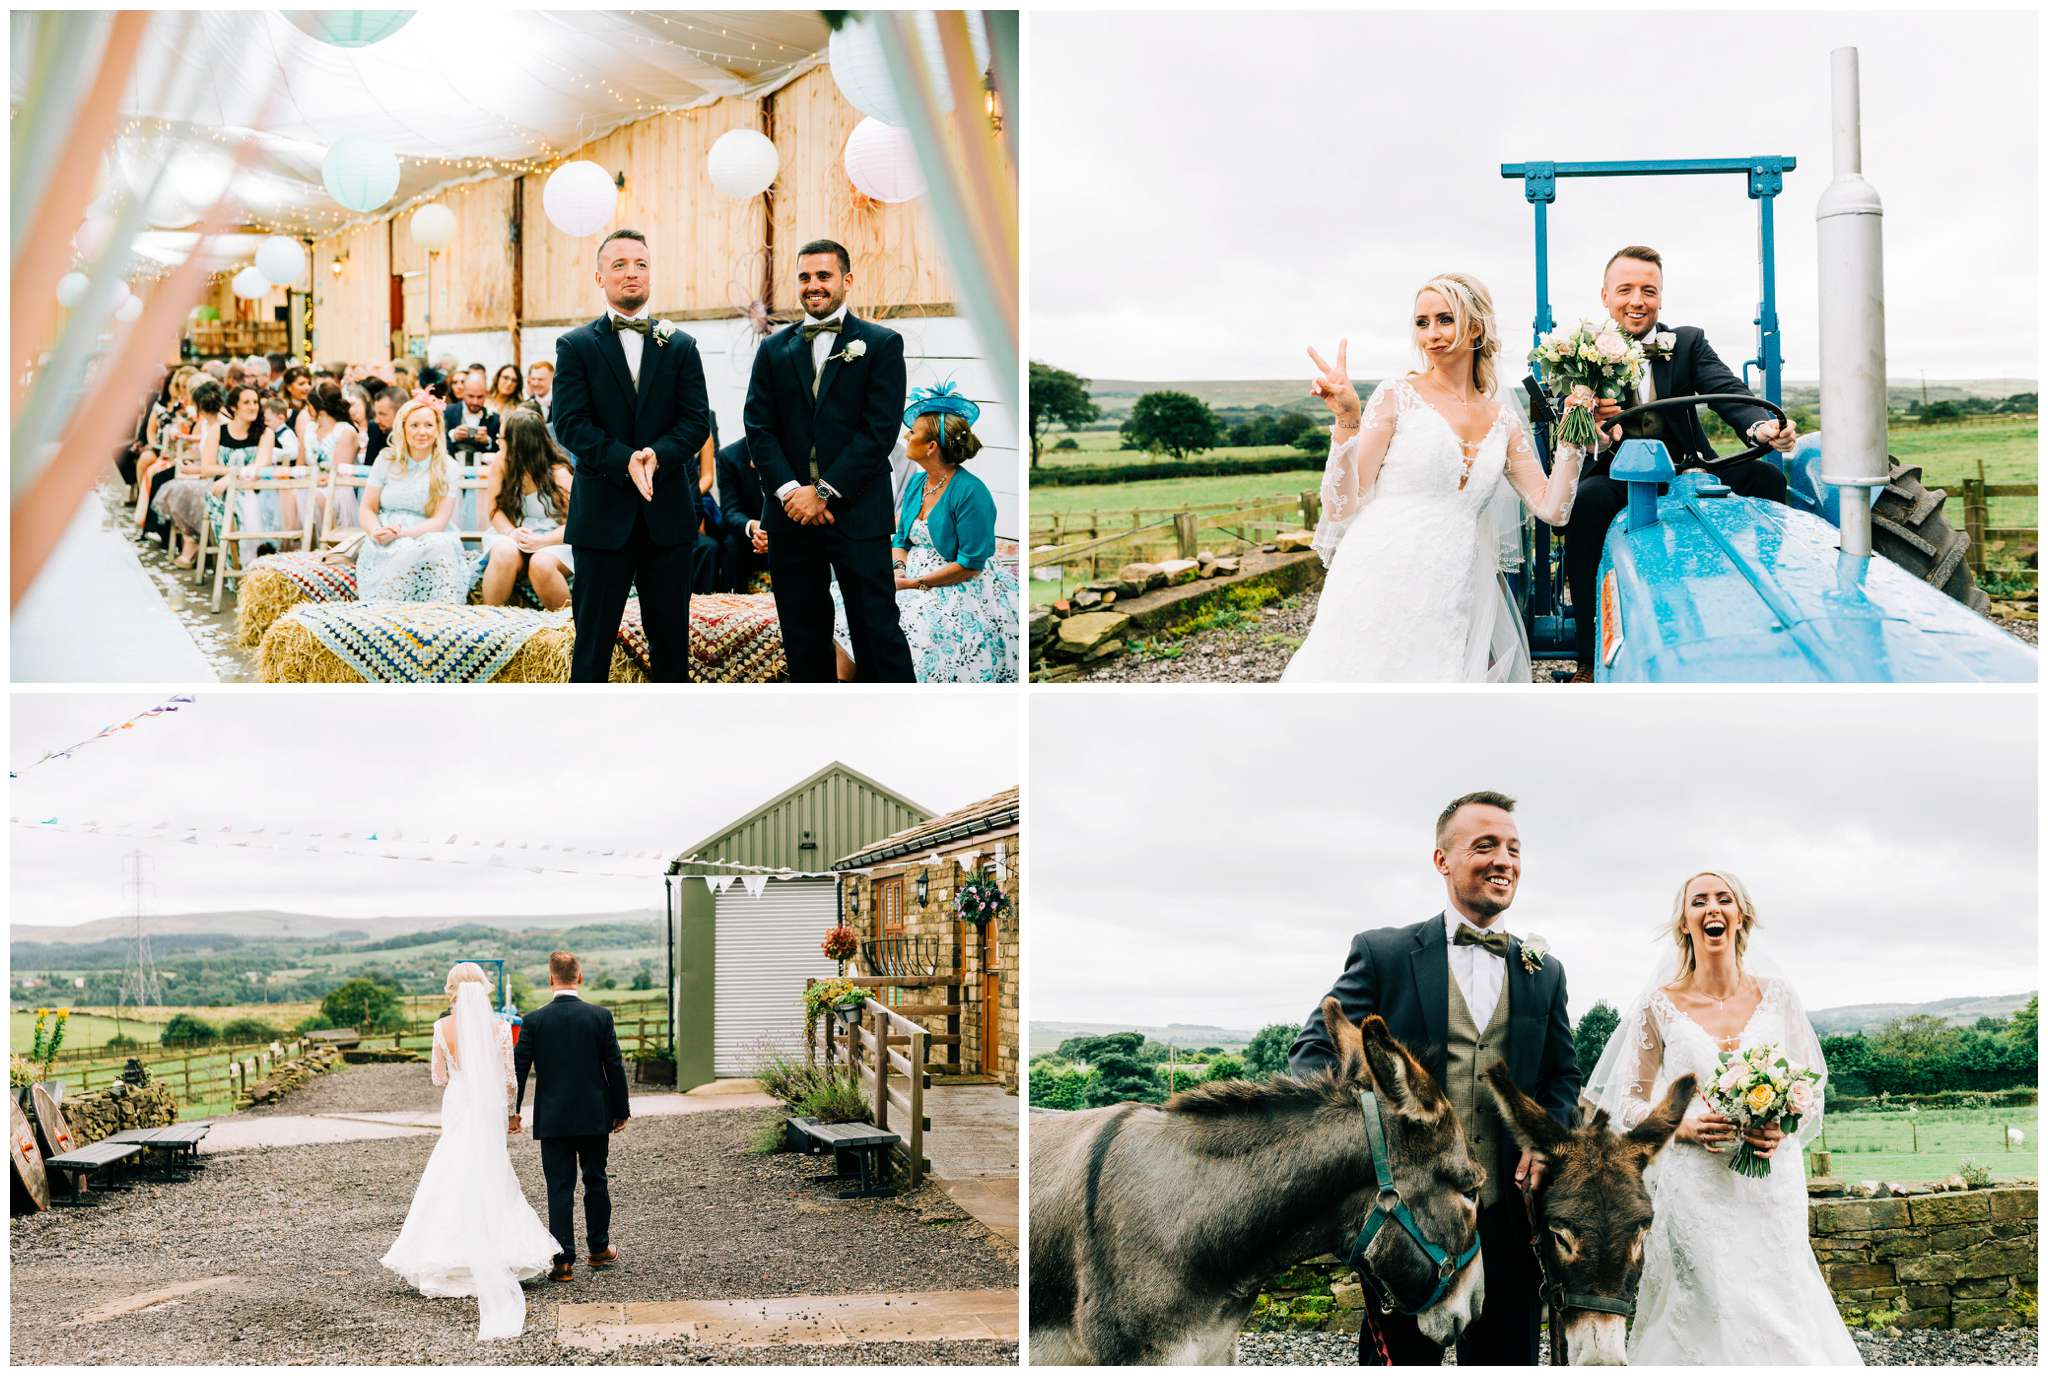 Festival wedding at Wellbeing Farm  - Bolton Wedding Photographer-29.jpg